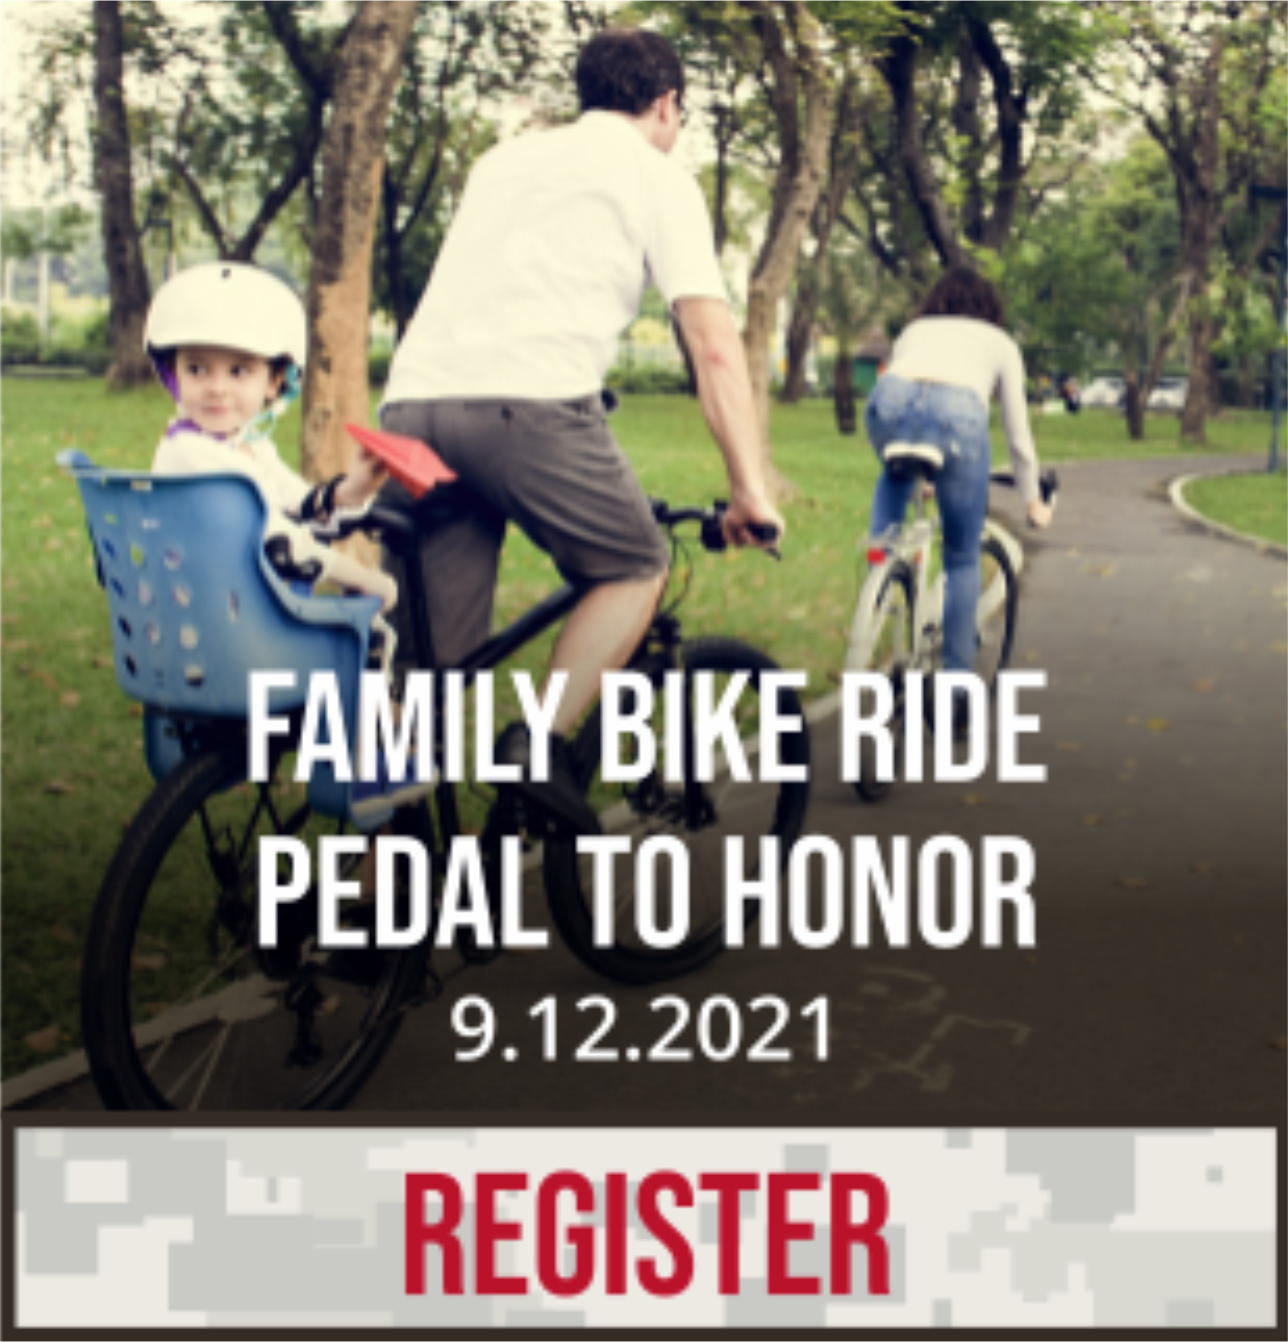 Family Bike Ride - Pedal To Honor. 9/12/21.  Click to register.